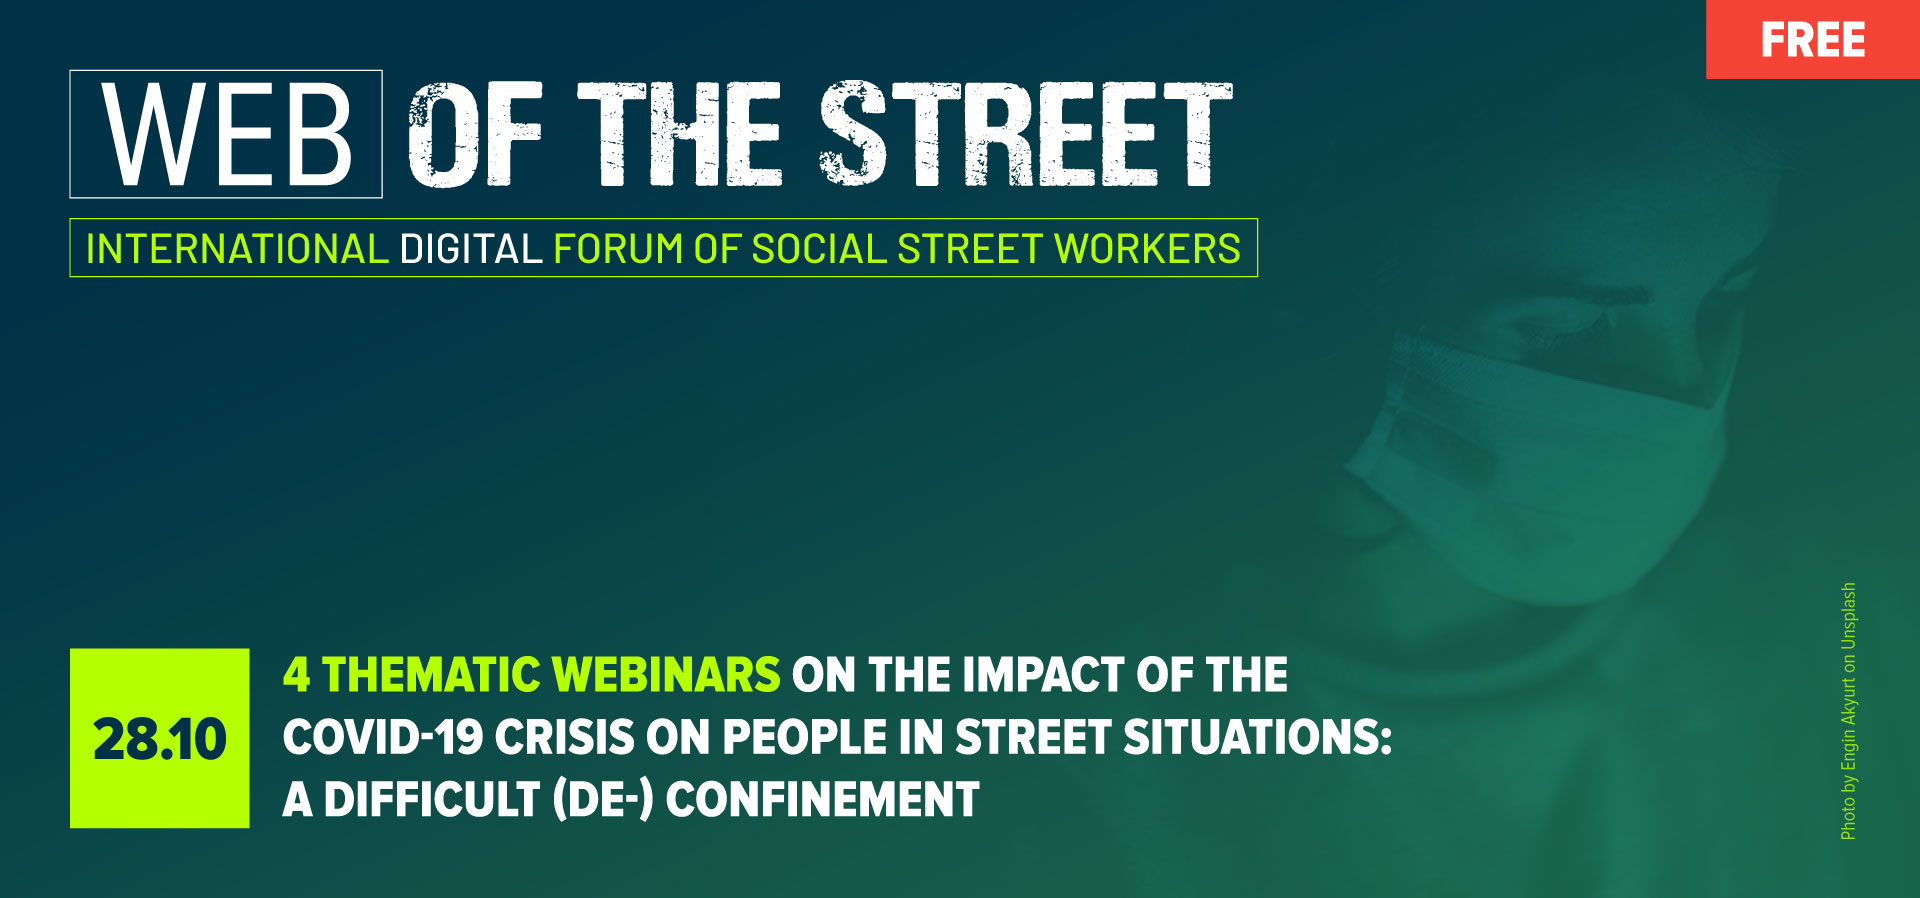 4 THEMATIC WEBINARS : The impact of the Covid-19 crisis on people in street situations: a difficult (de-) confinement